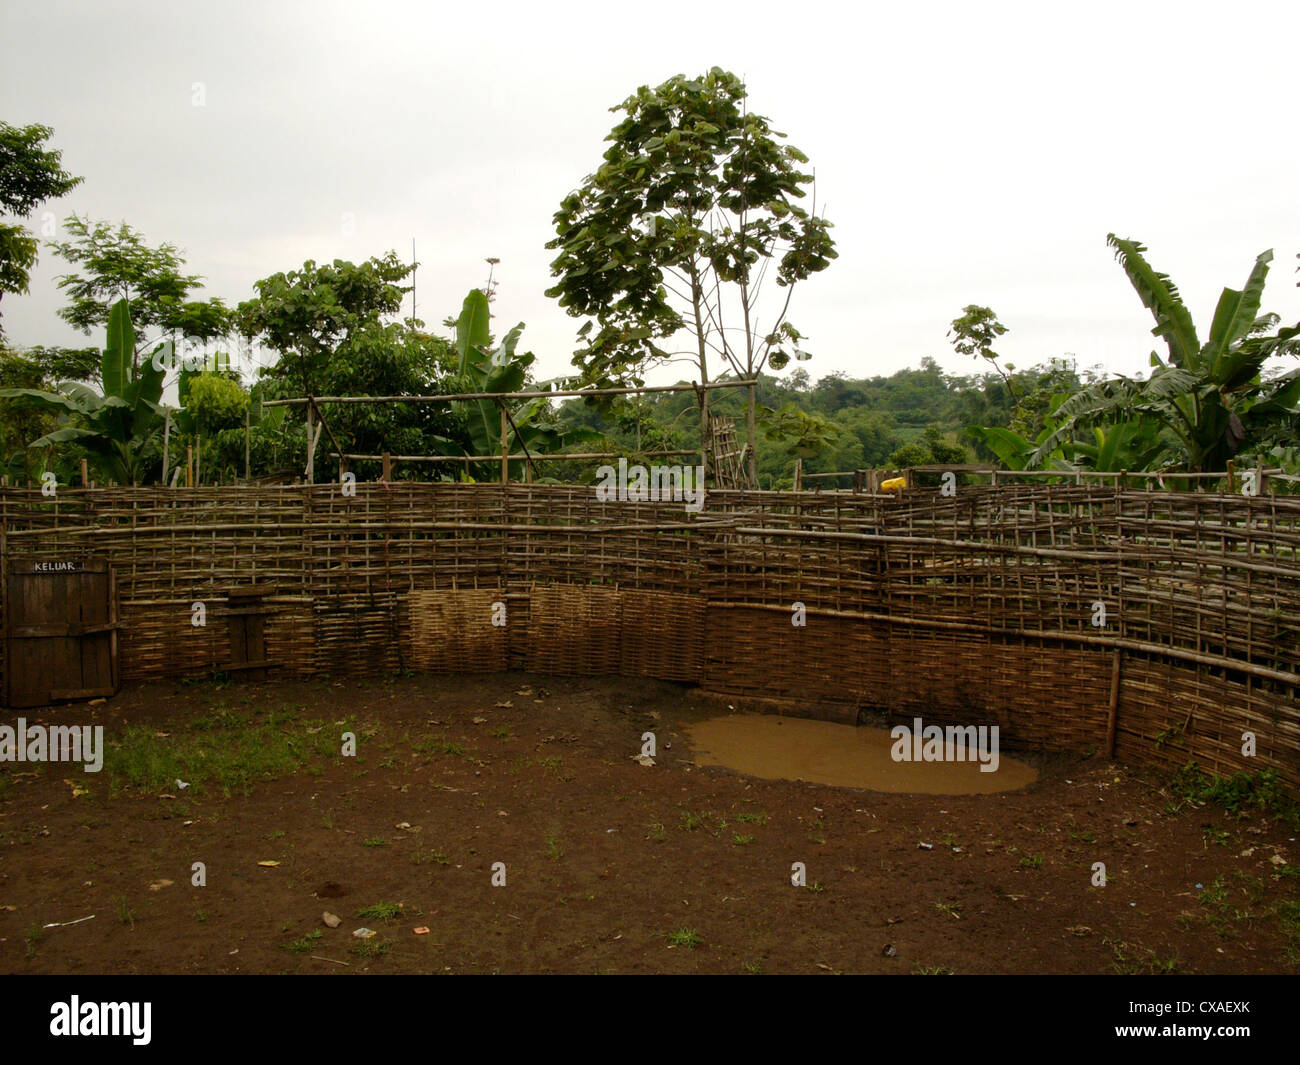 A boar-baiting arena lies empty after a legal boar-baiting contest in West Java, Indonesia. - Stock Image